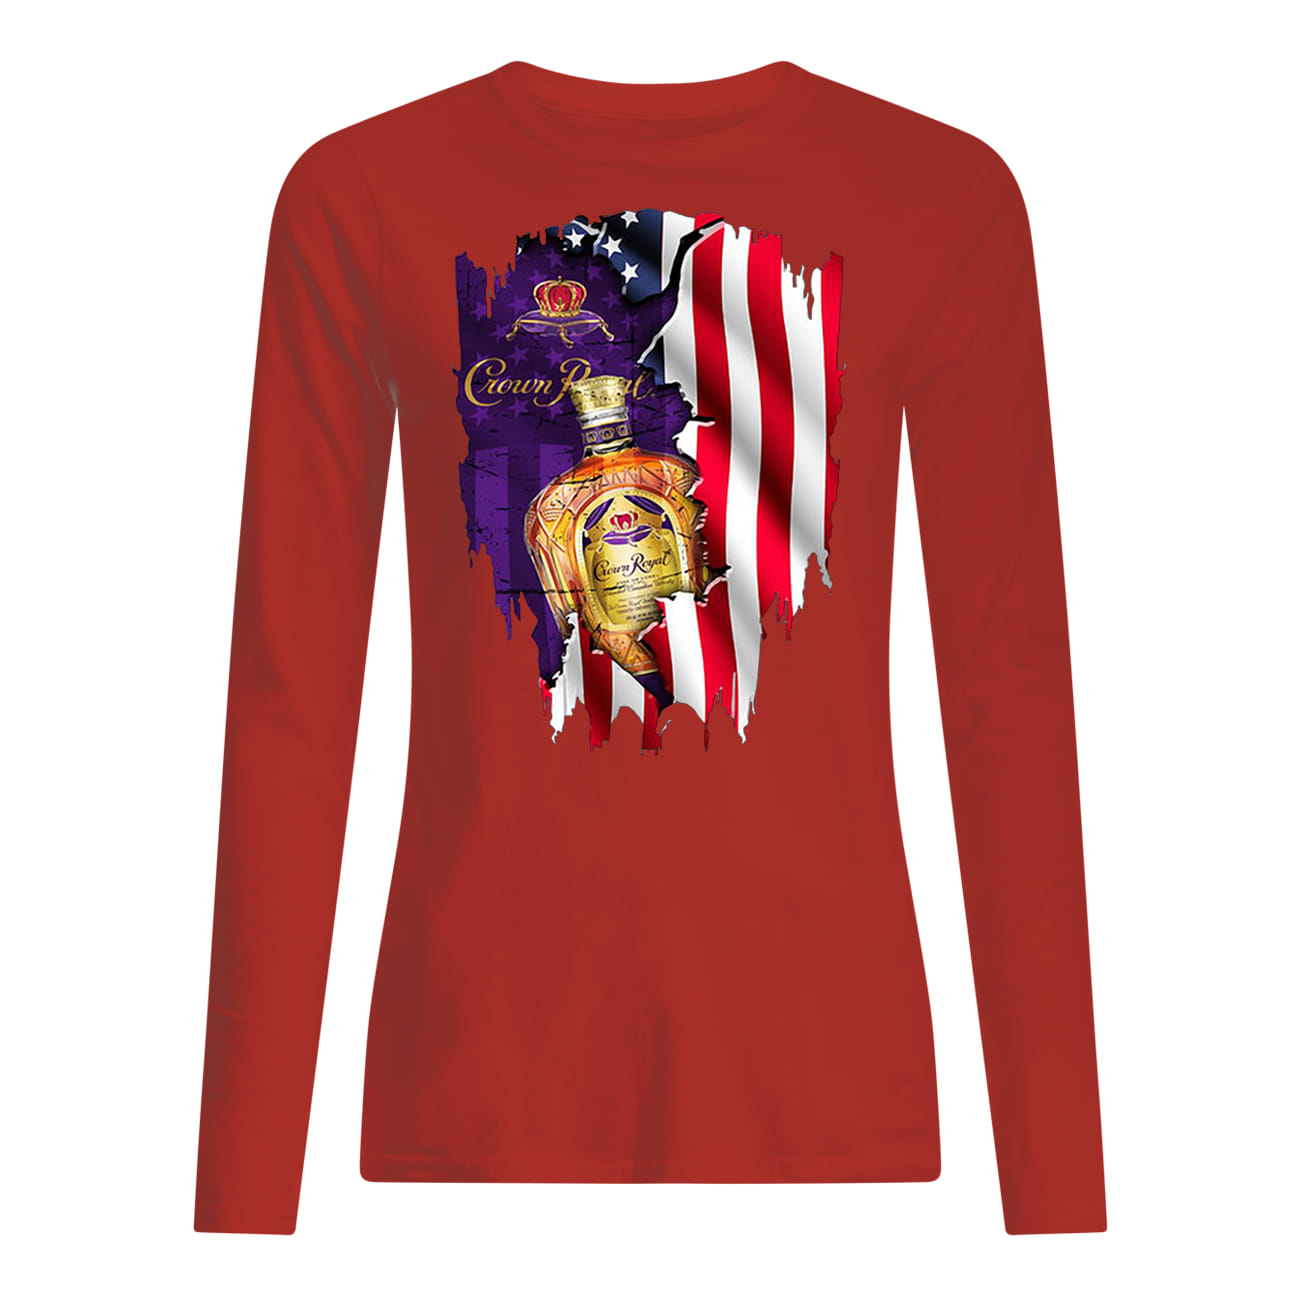 Crown royal inside american flag longsleeve